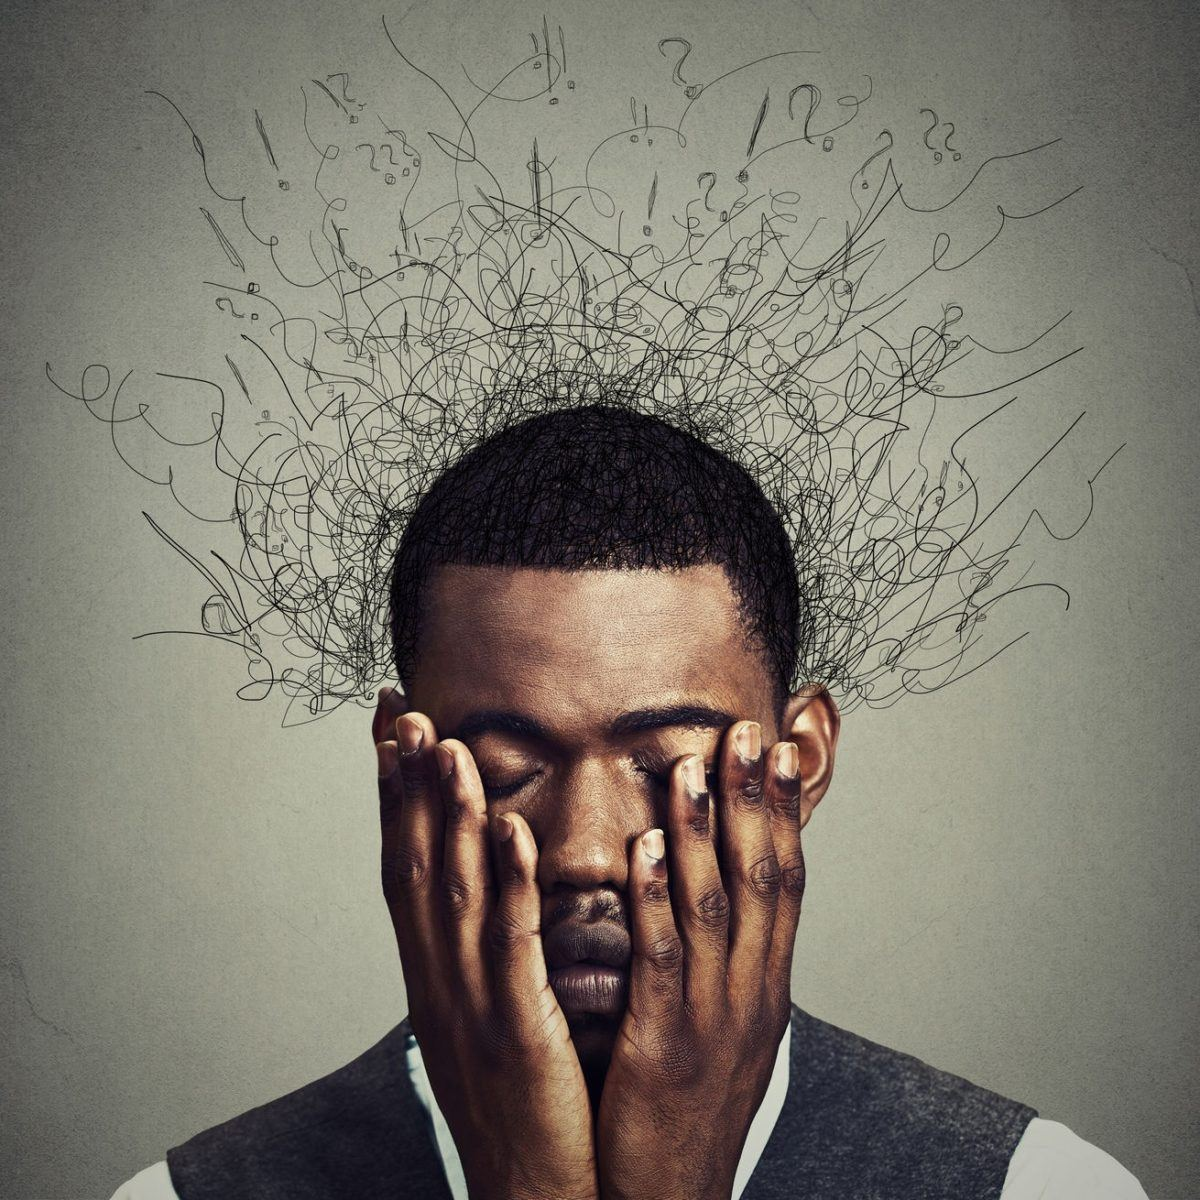 How to Get Rid of Bad Thoughts and Stay Present